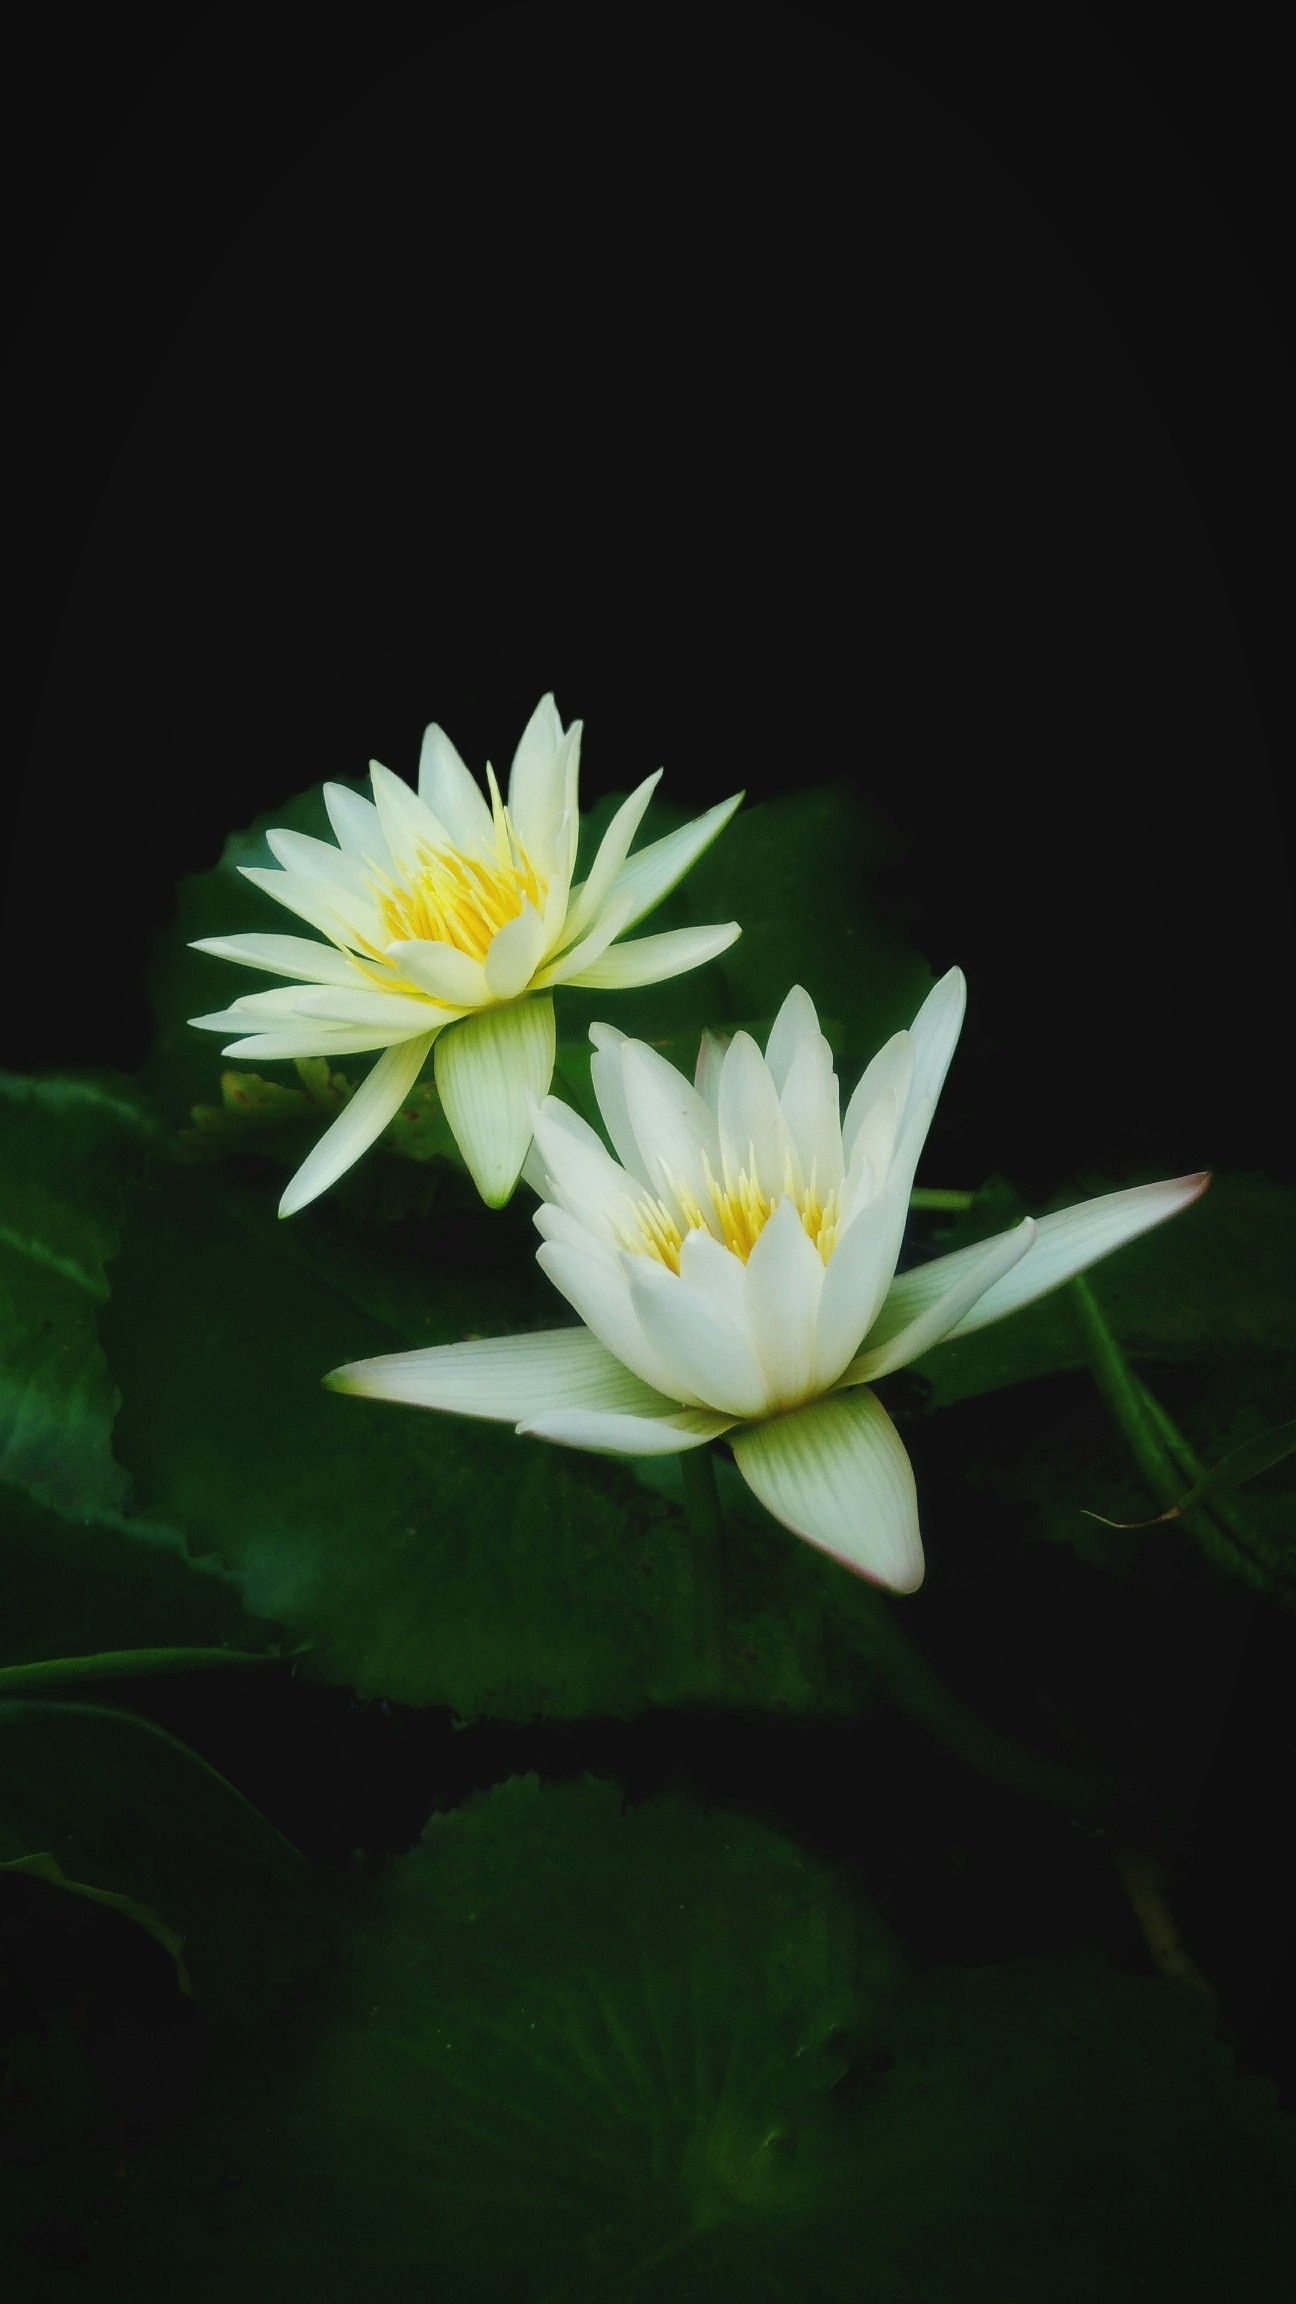 White Lotus Flower With Green Leaves And Black Background Flowers